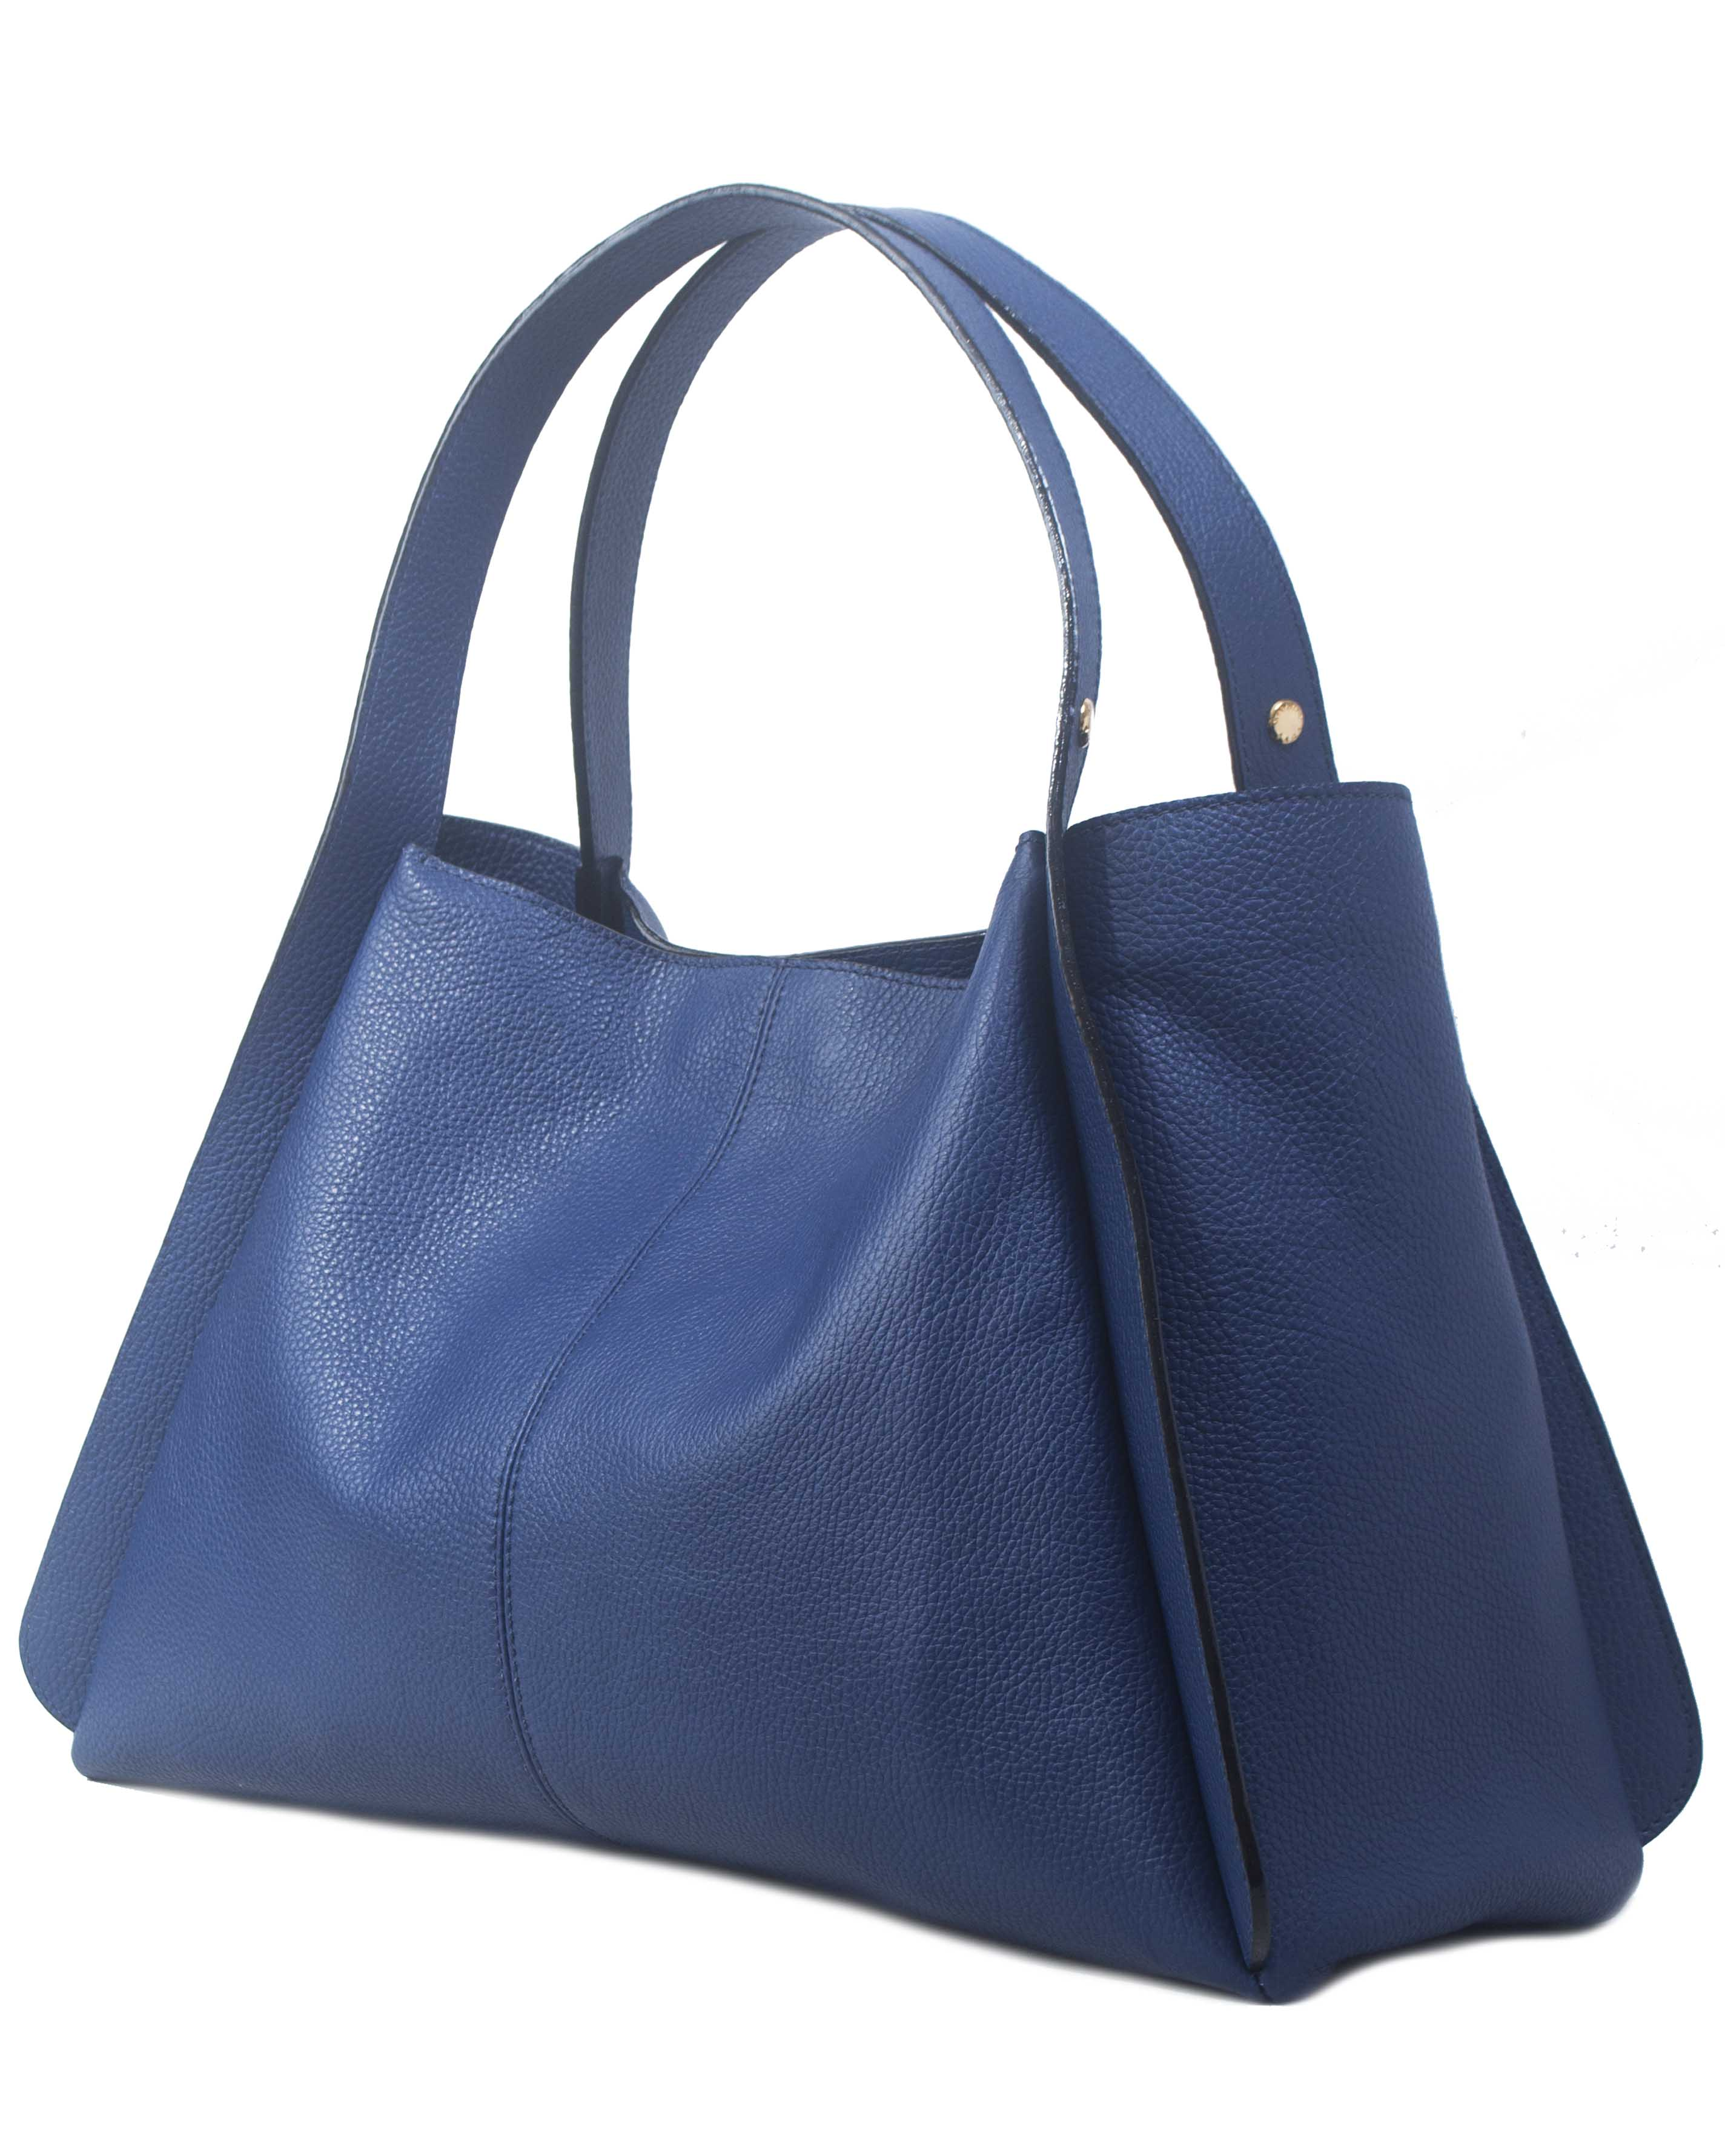 Cartera Tote Bags DS-2599 Color Azul